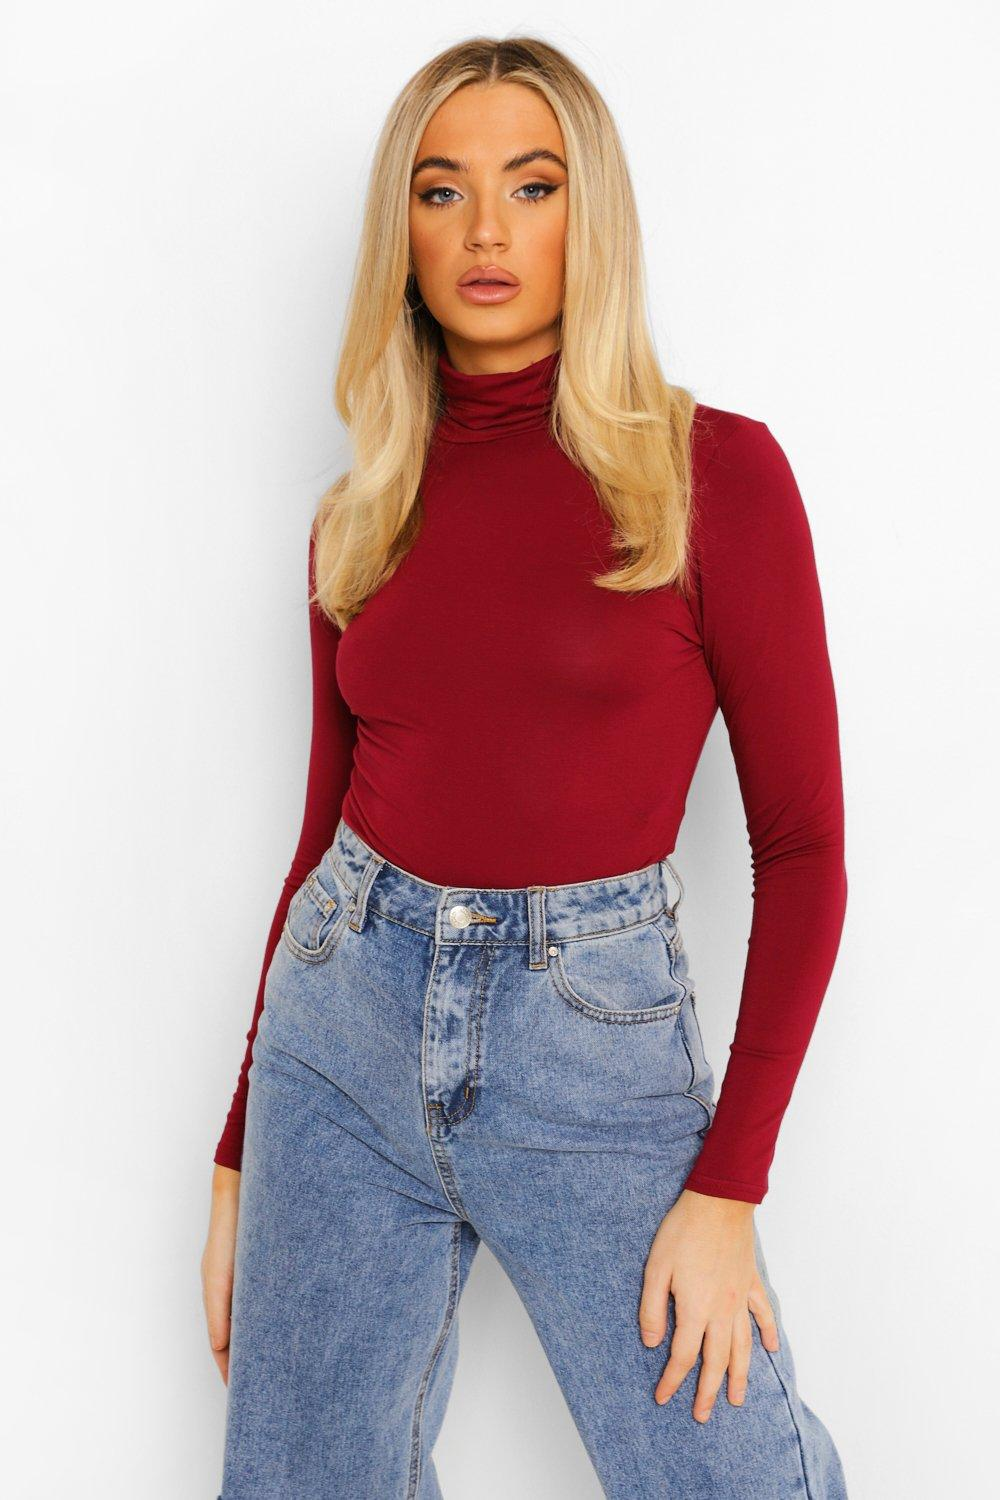 Turtleneck. Be classic and comfy in a turtleneck. Pair a sweater with jeans, skirts and more for a fresh look every day. Explore tops from Charter Club, Lauren by Ralph Lauren and many others. Enjoy a classic appearance in warm weather by wearing a women's sleeveless turtleneck.